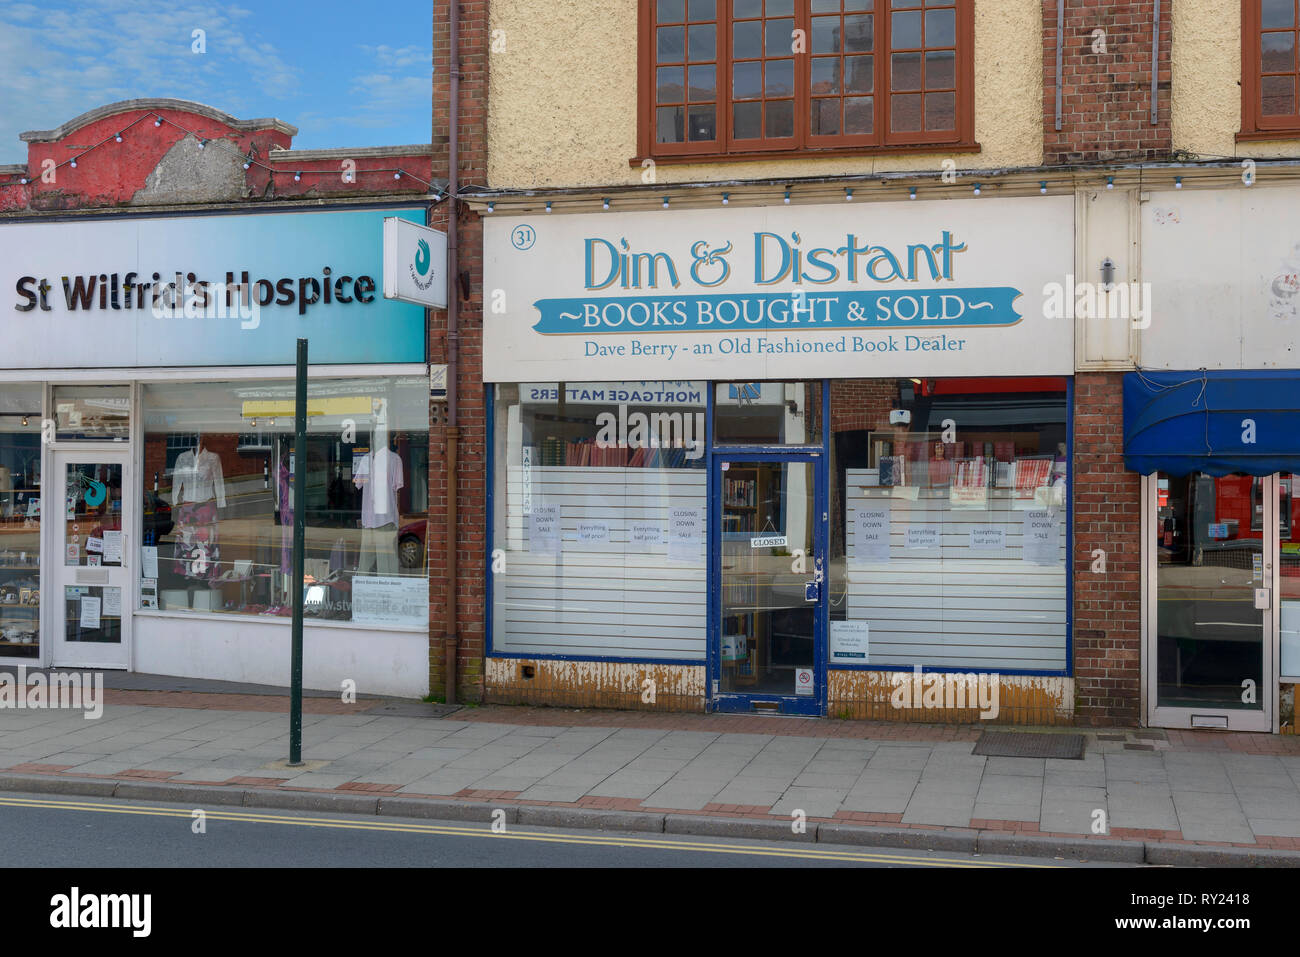 Book dealer and charity shop, Heathfield, East Sussex, England, UK - Stock Image